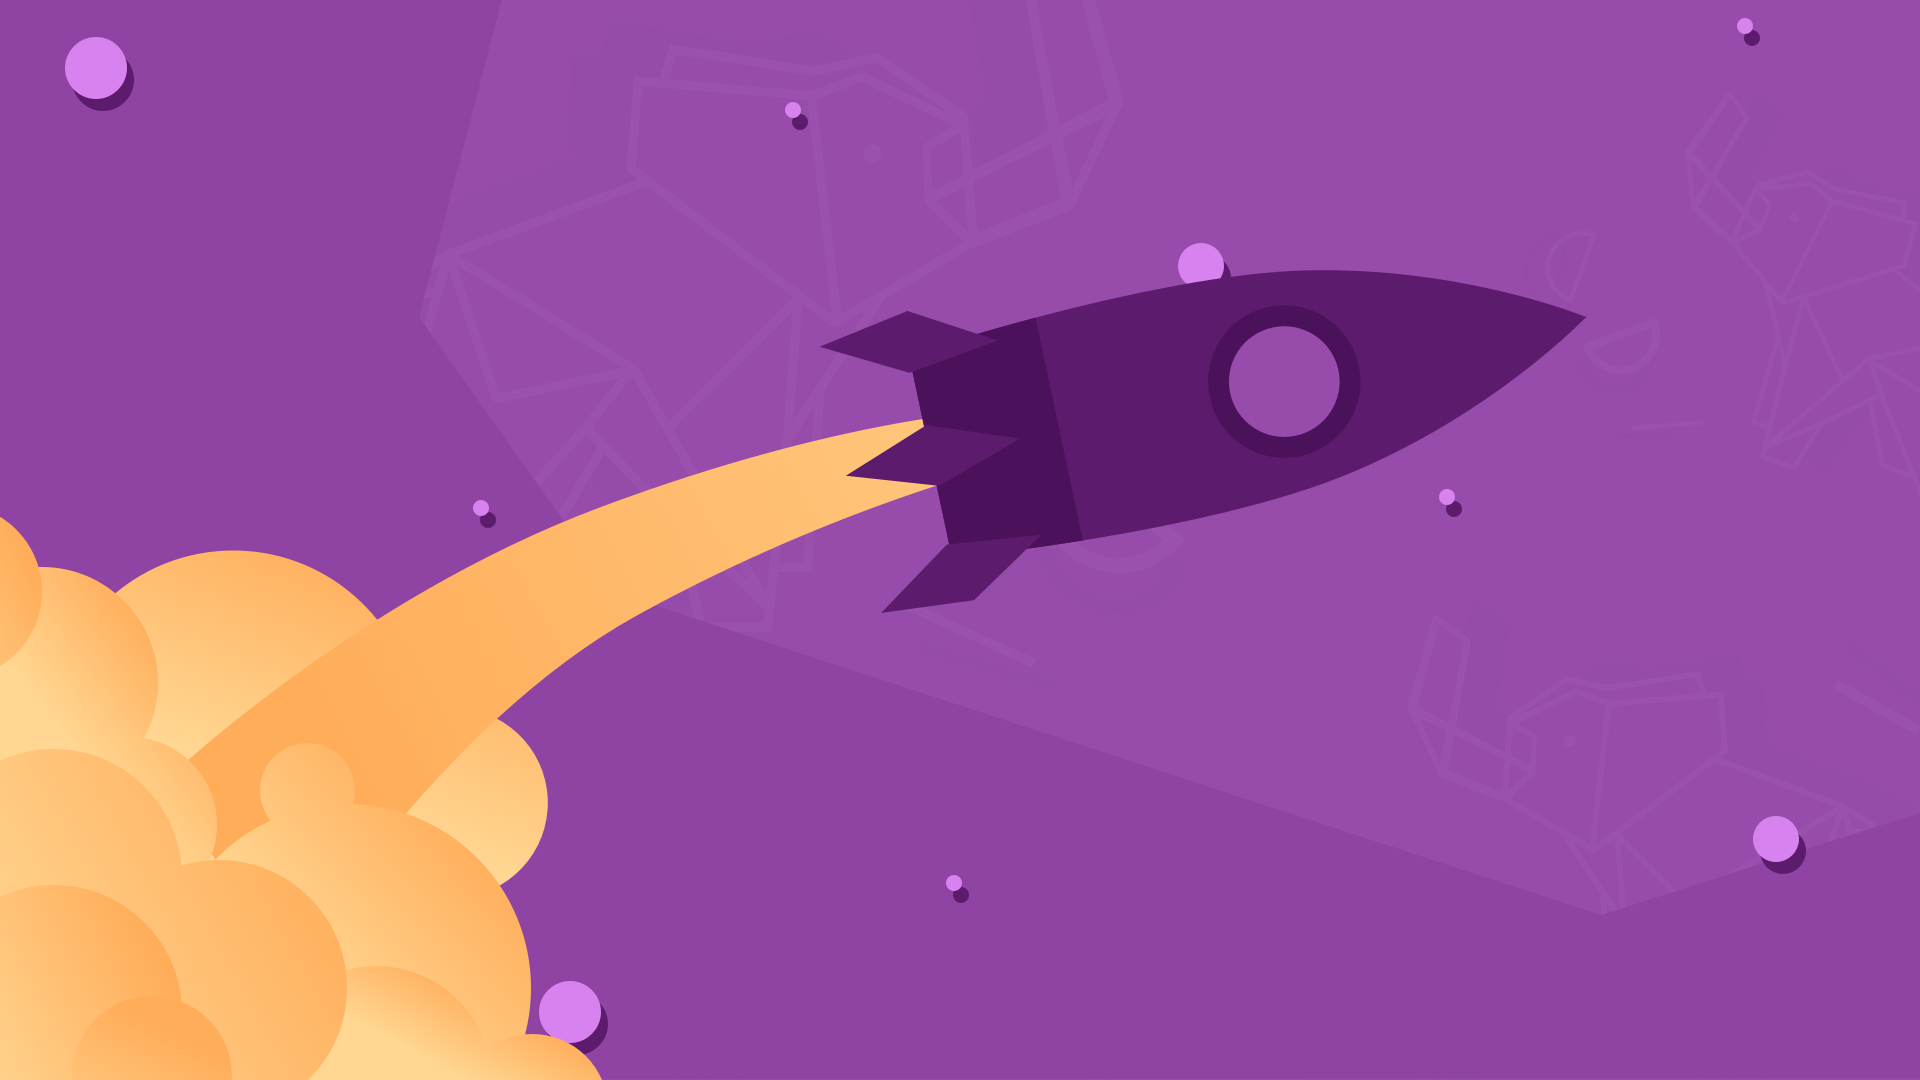 Laravel Course Image of Rocket